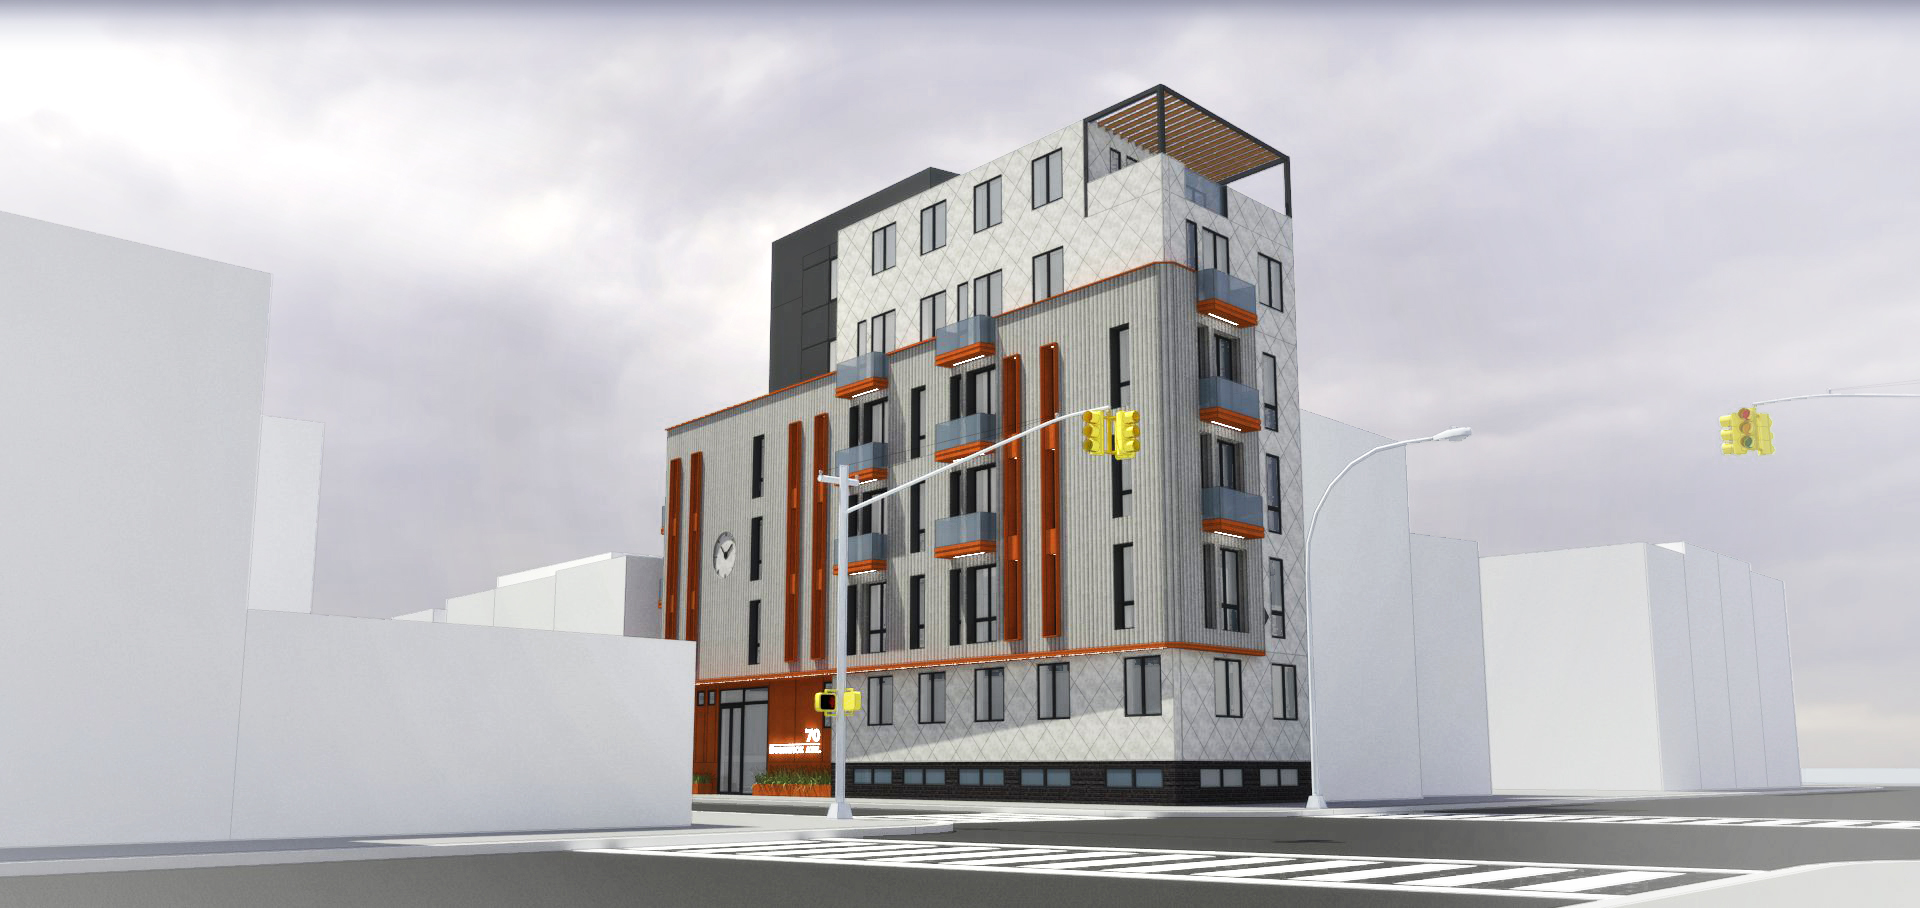 70 Bushwick Avenue, rendering by Input Creative Studio